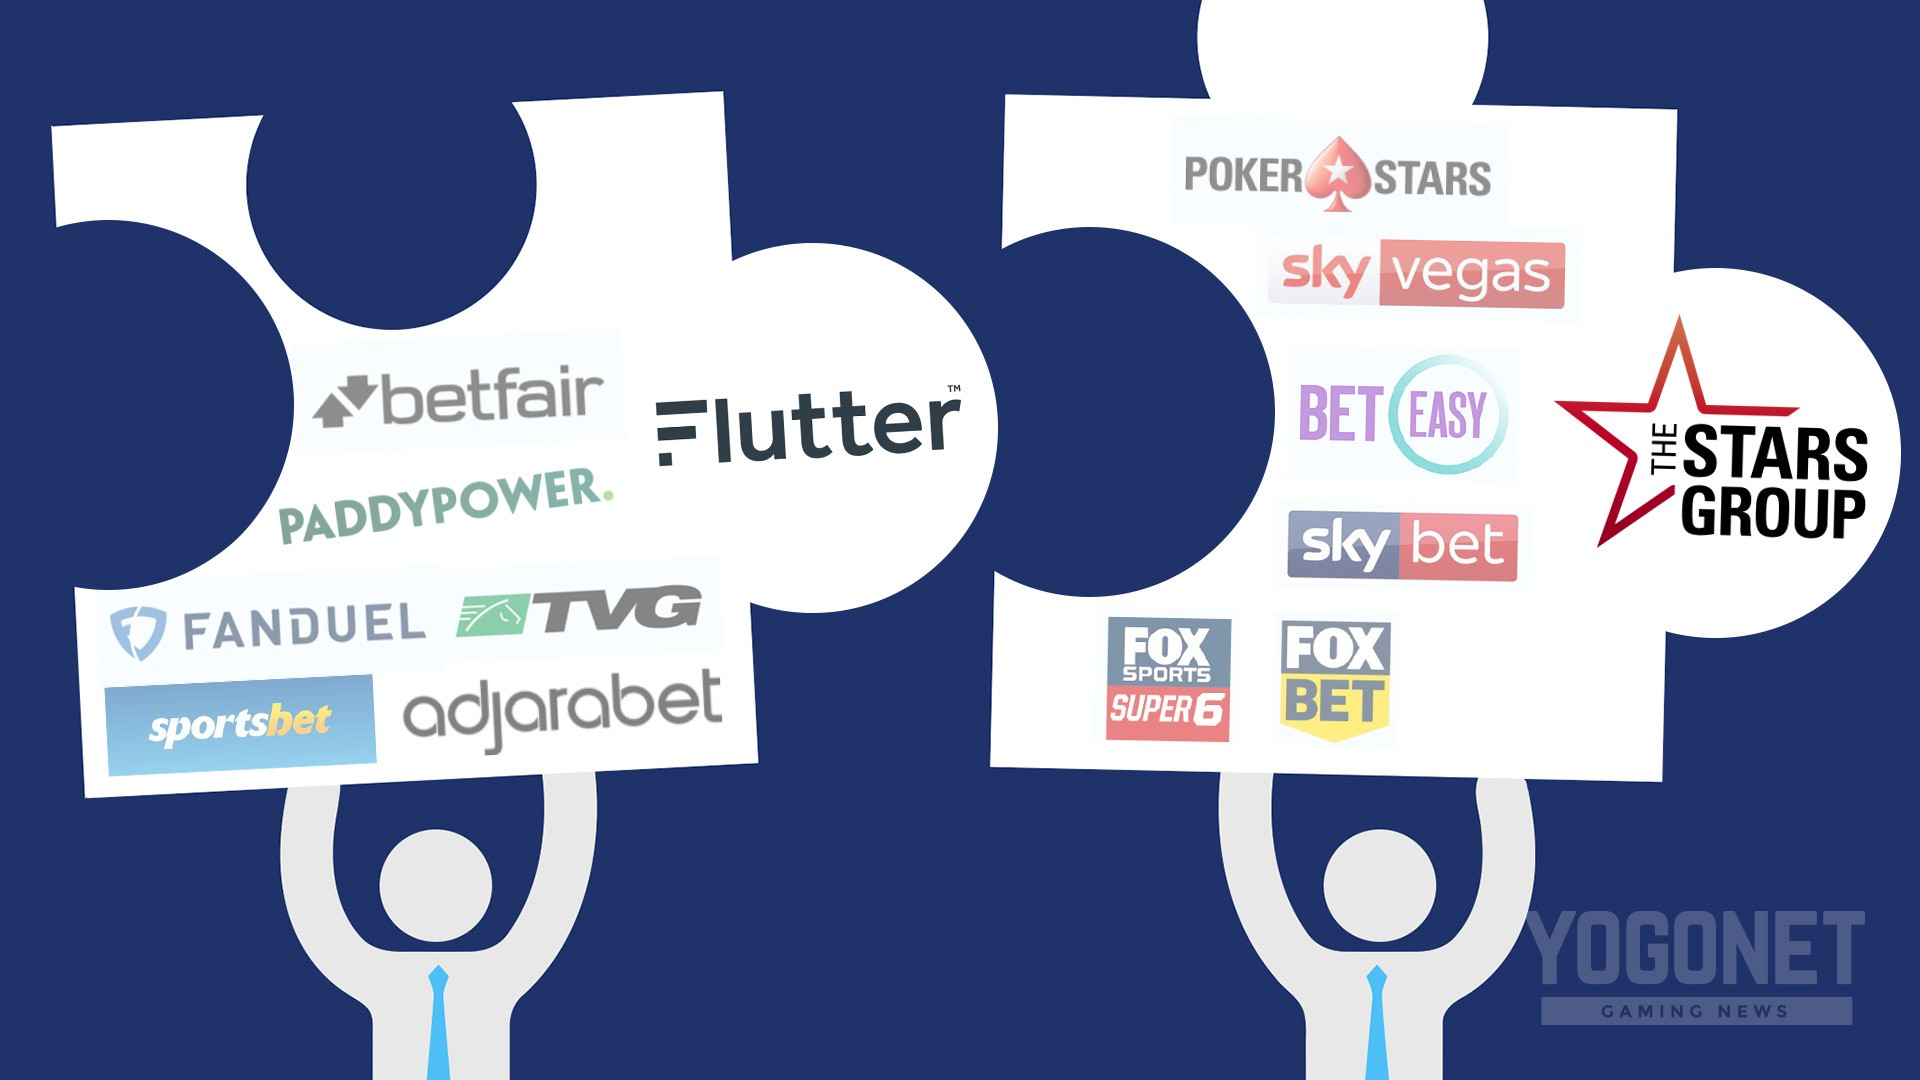 Flutter and The Stars Group merger faces UK competition probe